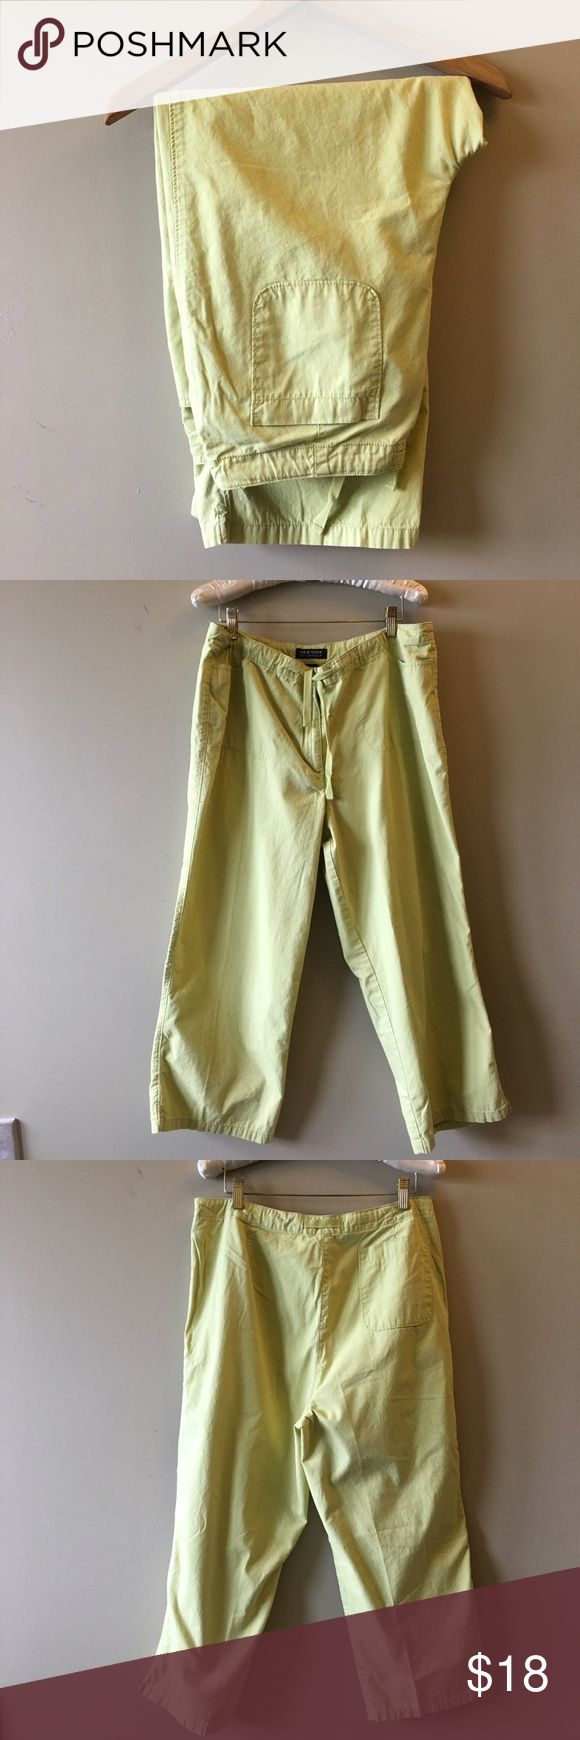 "NY & Co lime green loose fit drawstring capris Excellent condition, no stains or flaws. Loose fitting capris with drawstring. 24"" inseam. New York & Company Pants Capris"